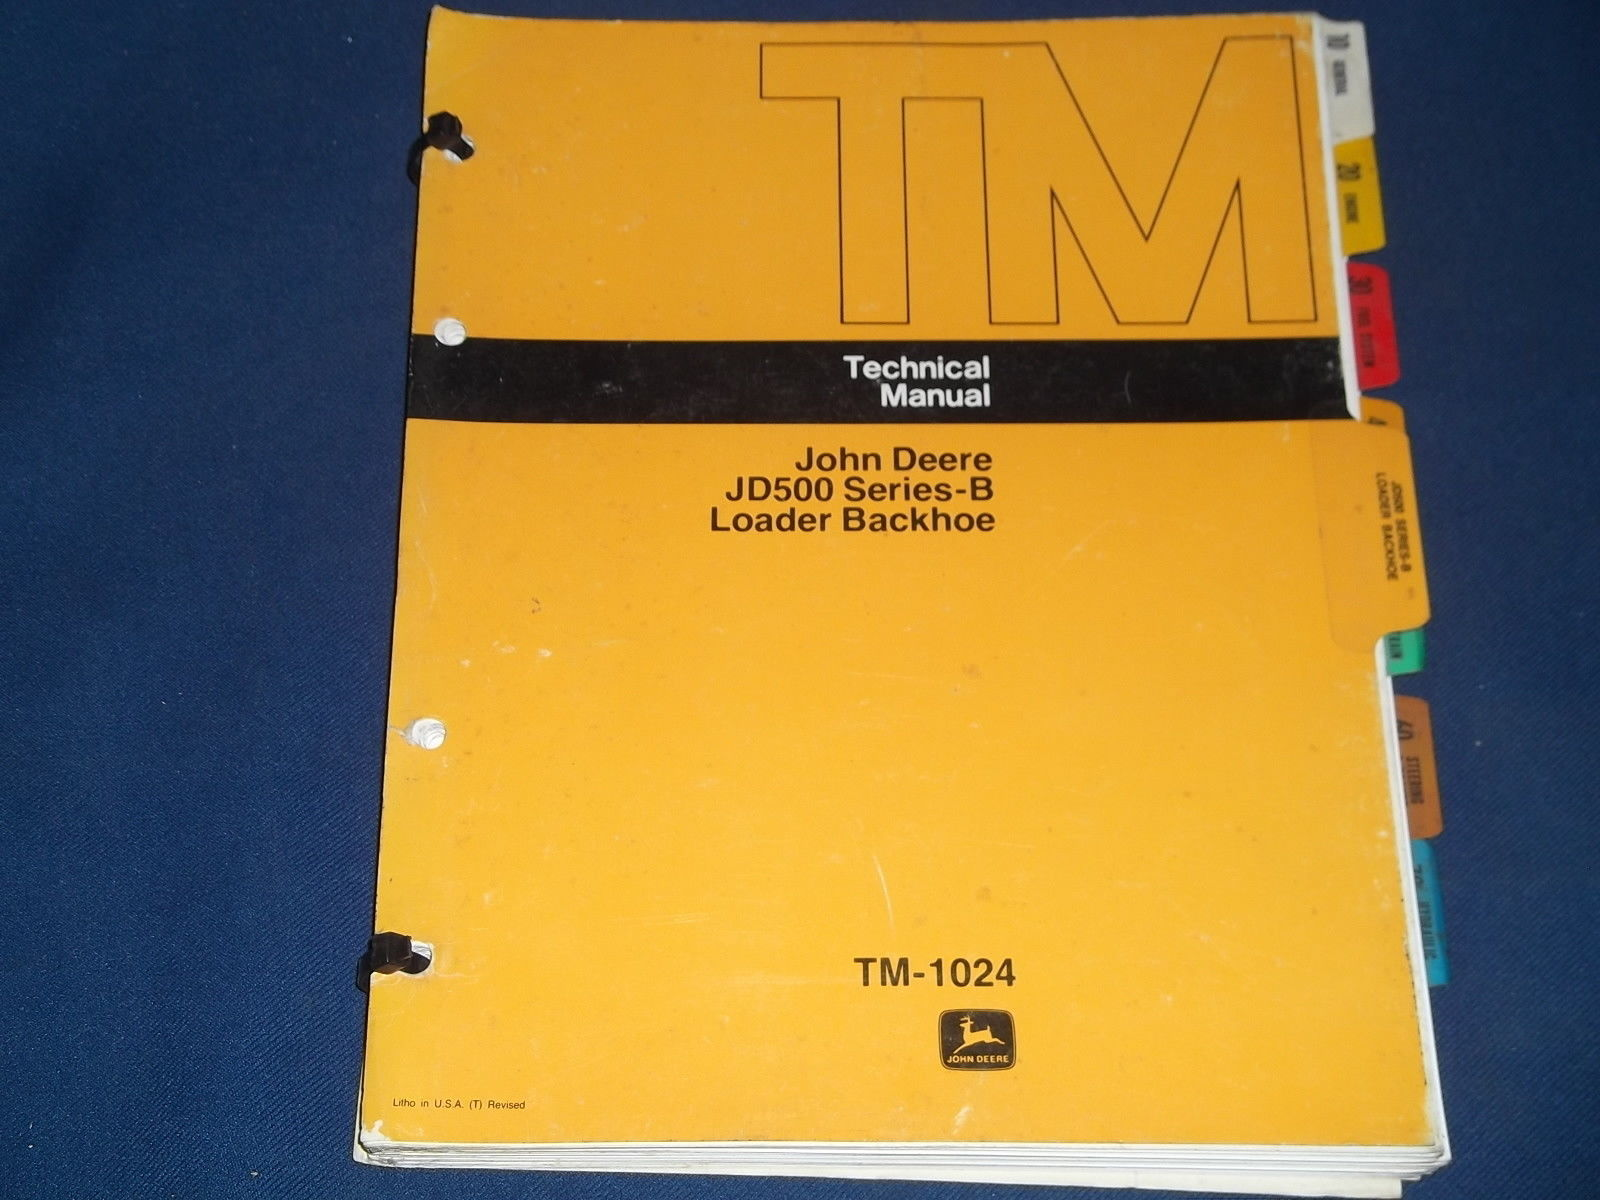 19 repair manual John Deere 1800 Utility Vehicle TM1527 Technical Manual  PDF John Deere 1800 Utility Vehicle TM1527 Technical Manual PDF